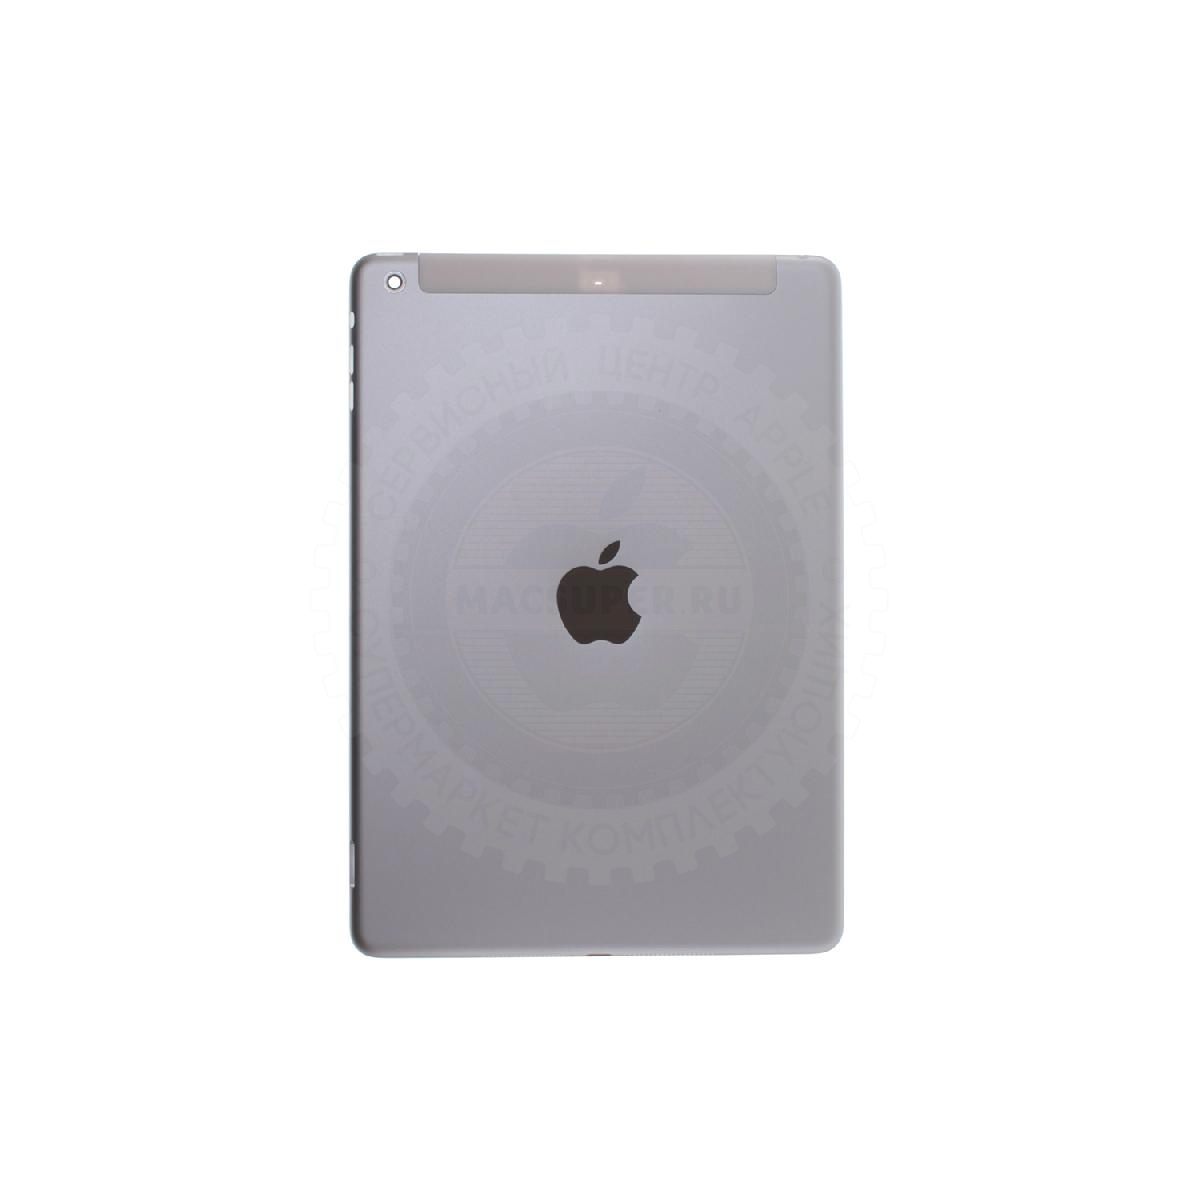 Купить корпус для ipad air lte silver